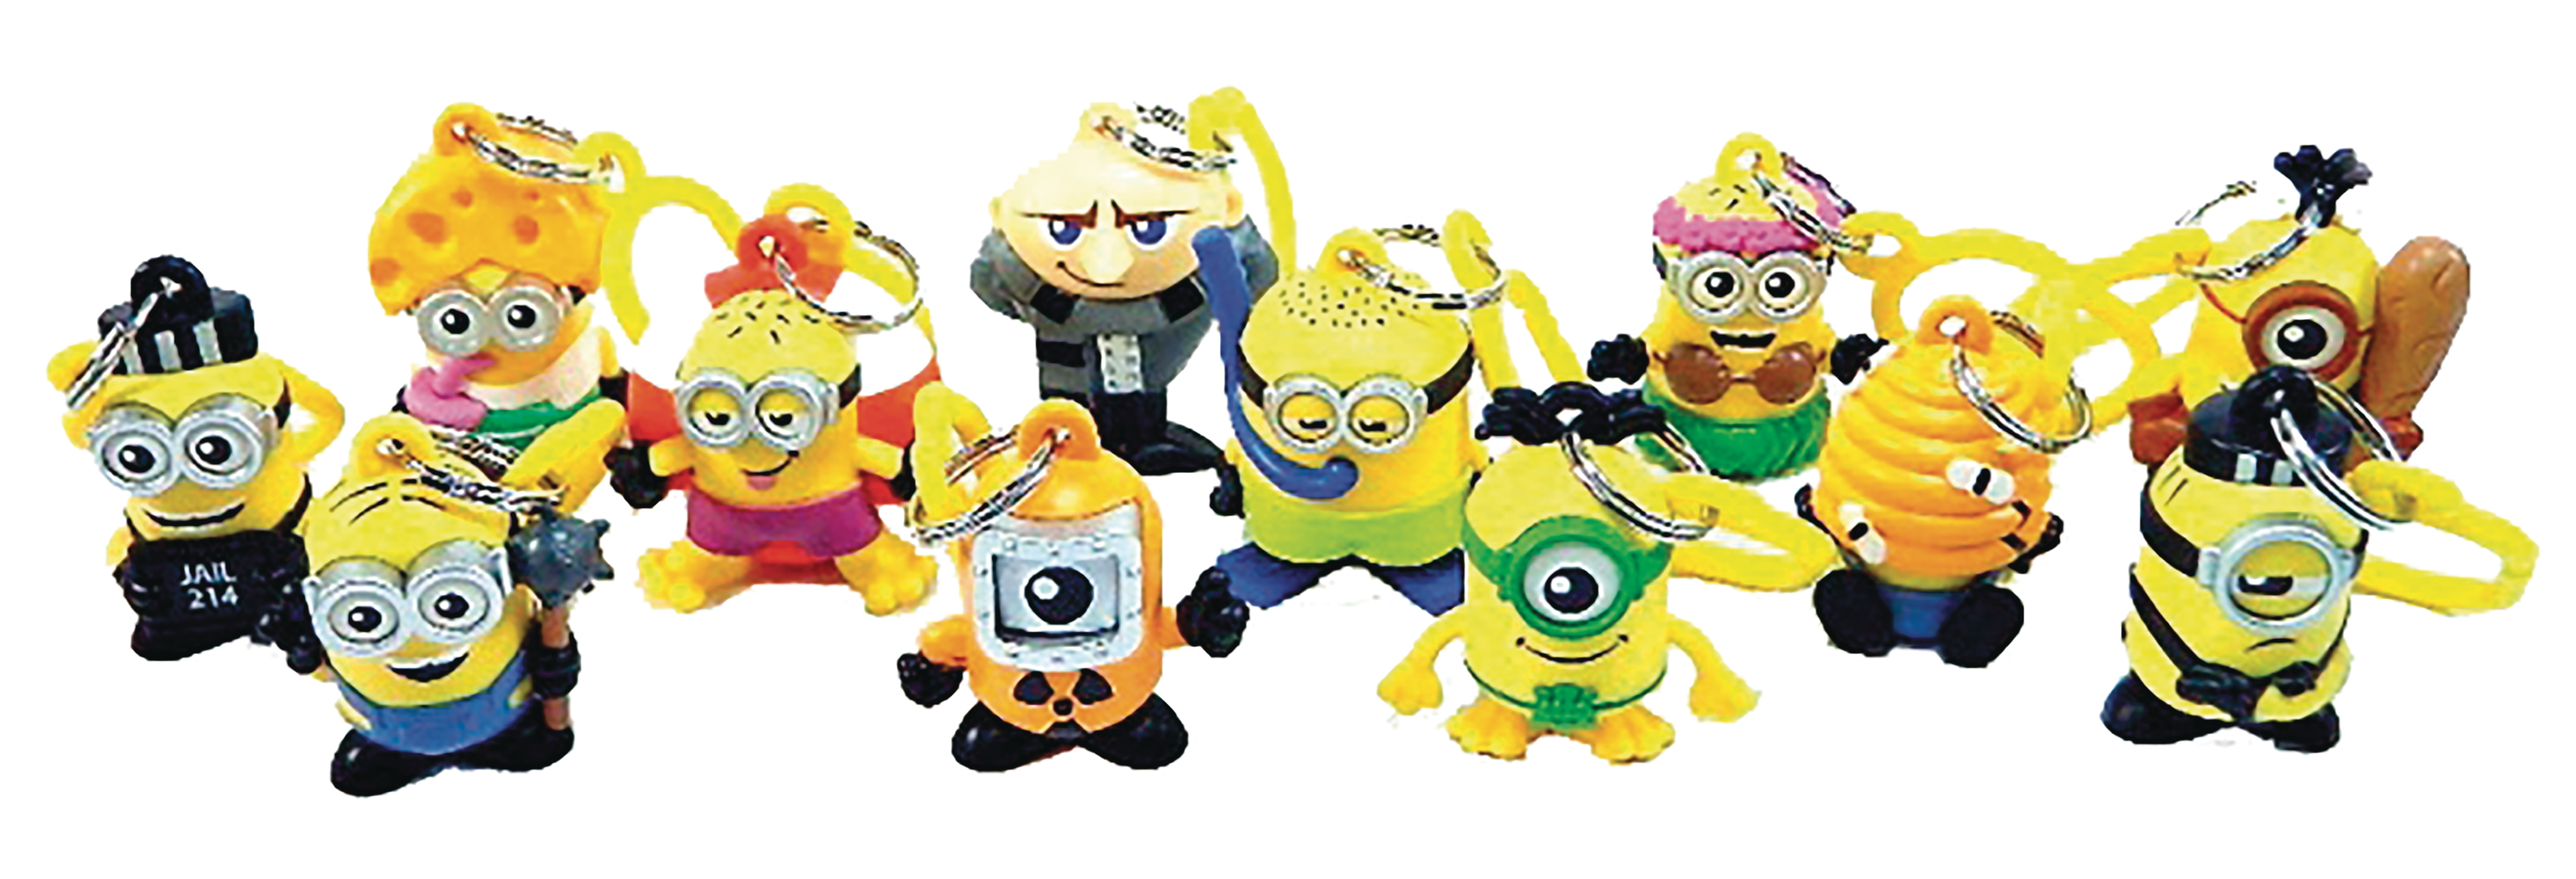 Despicable Me 3: Figure Hanger (Blind Pack)